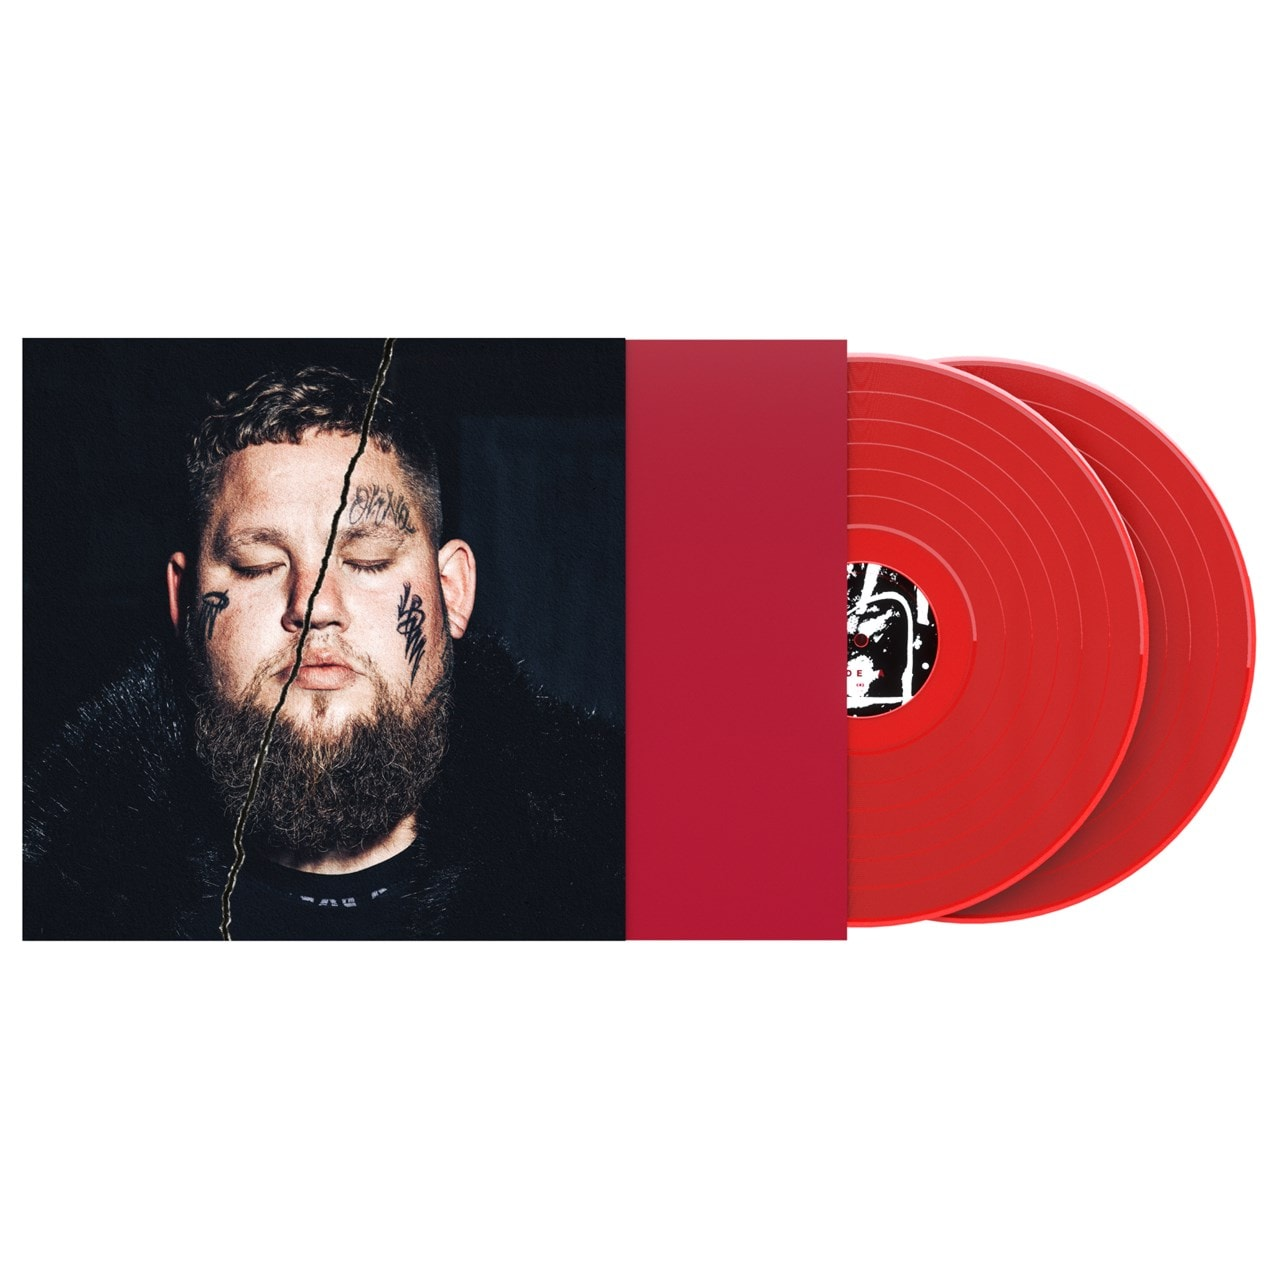 Life By Misadventure - Limited Edition Transparent Red Vinyl - 1